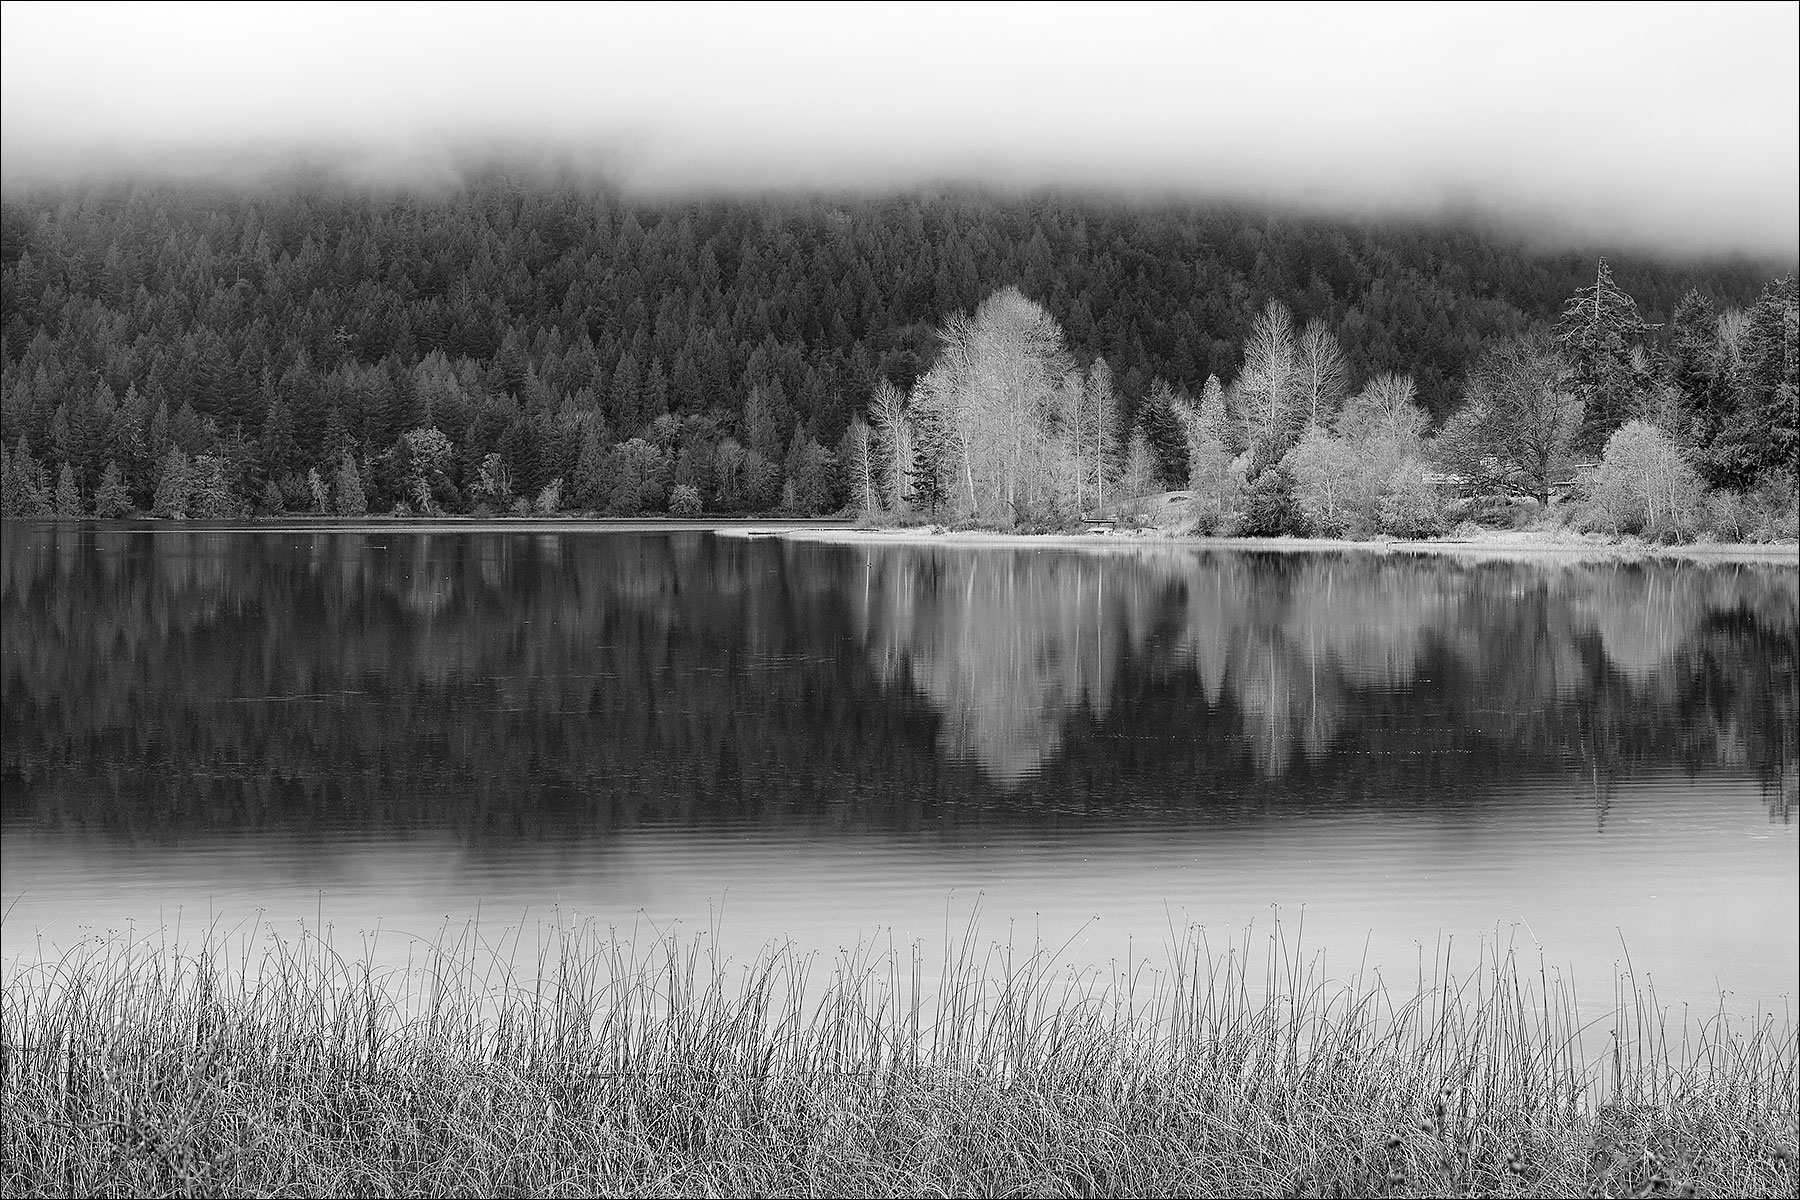 St. Mary Lake on Salt Spring Island ©johncameron.ca